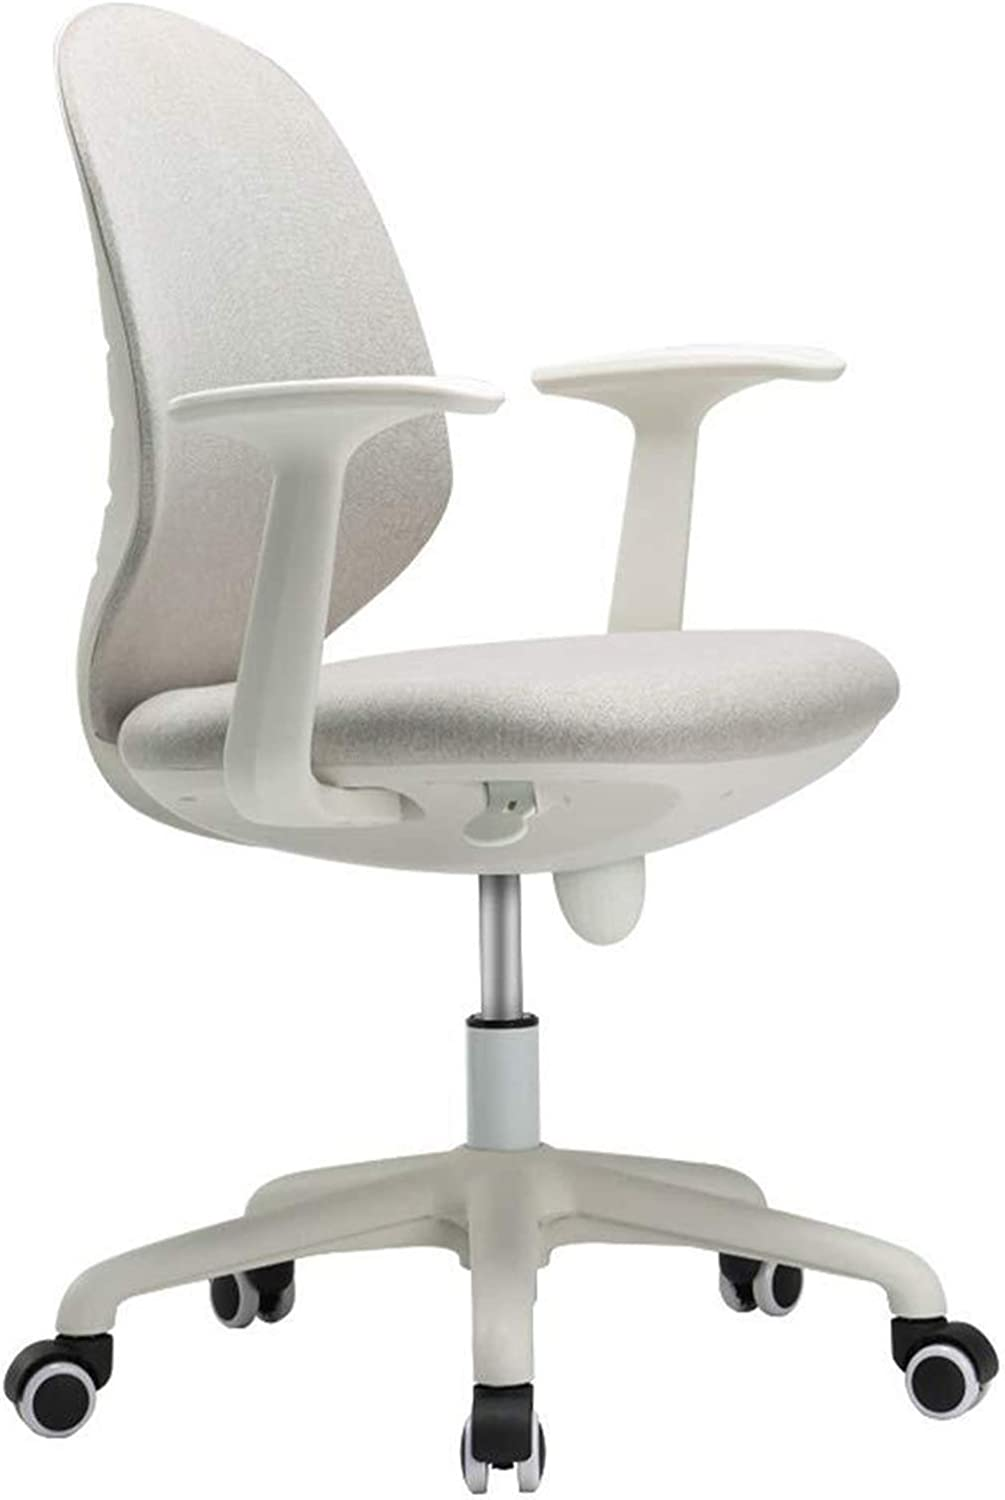 ZKS-KS Breathable mesh Executive Chair Office Ranking TOP17 security Ergonomic